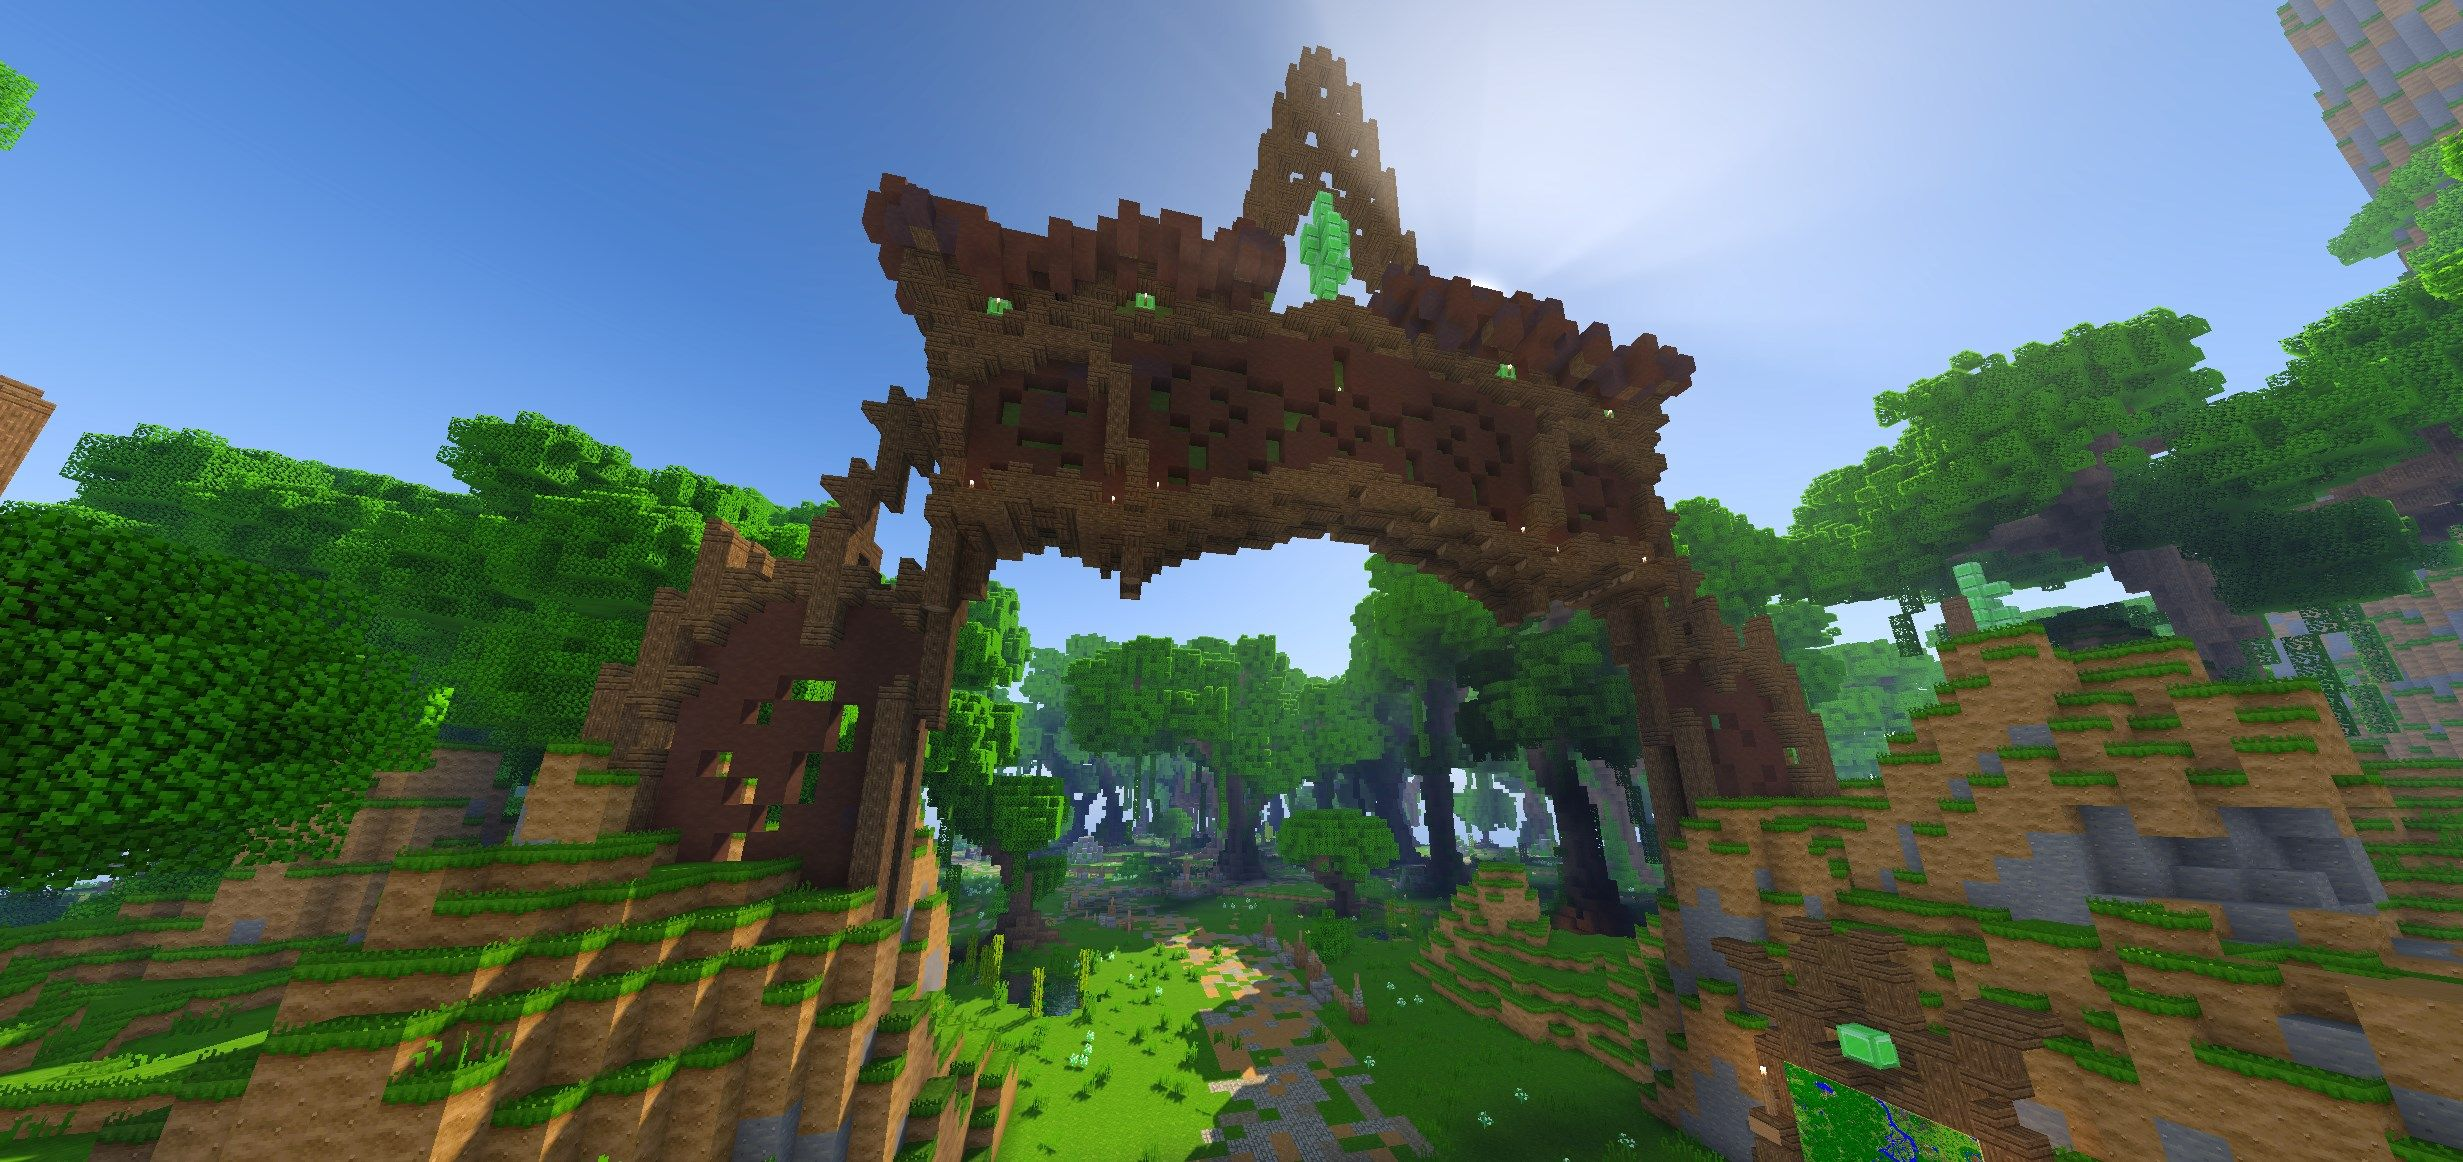 A Minecraft Mmorpg I Ve Been Working On Fulltime For 4 Years Minecraft Minecraft Projects Mmorpg